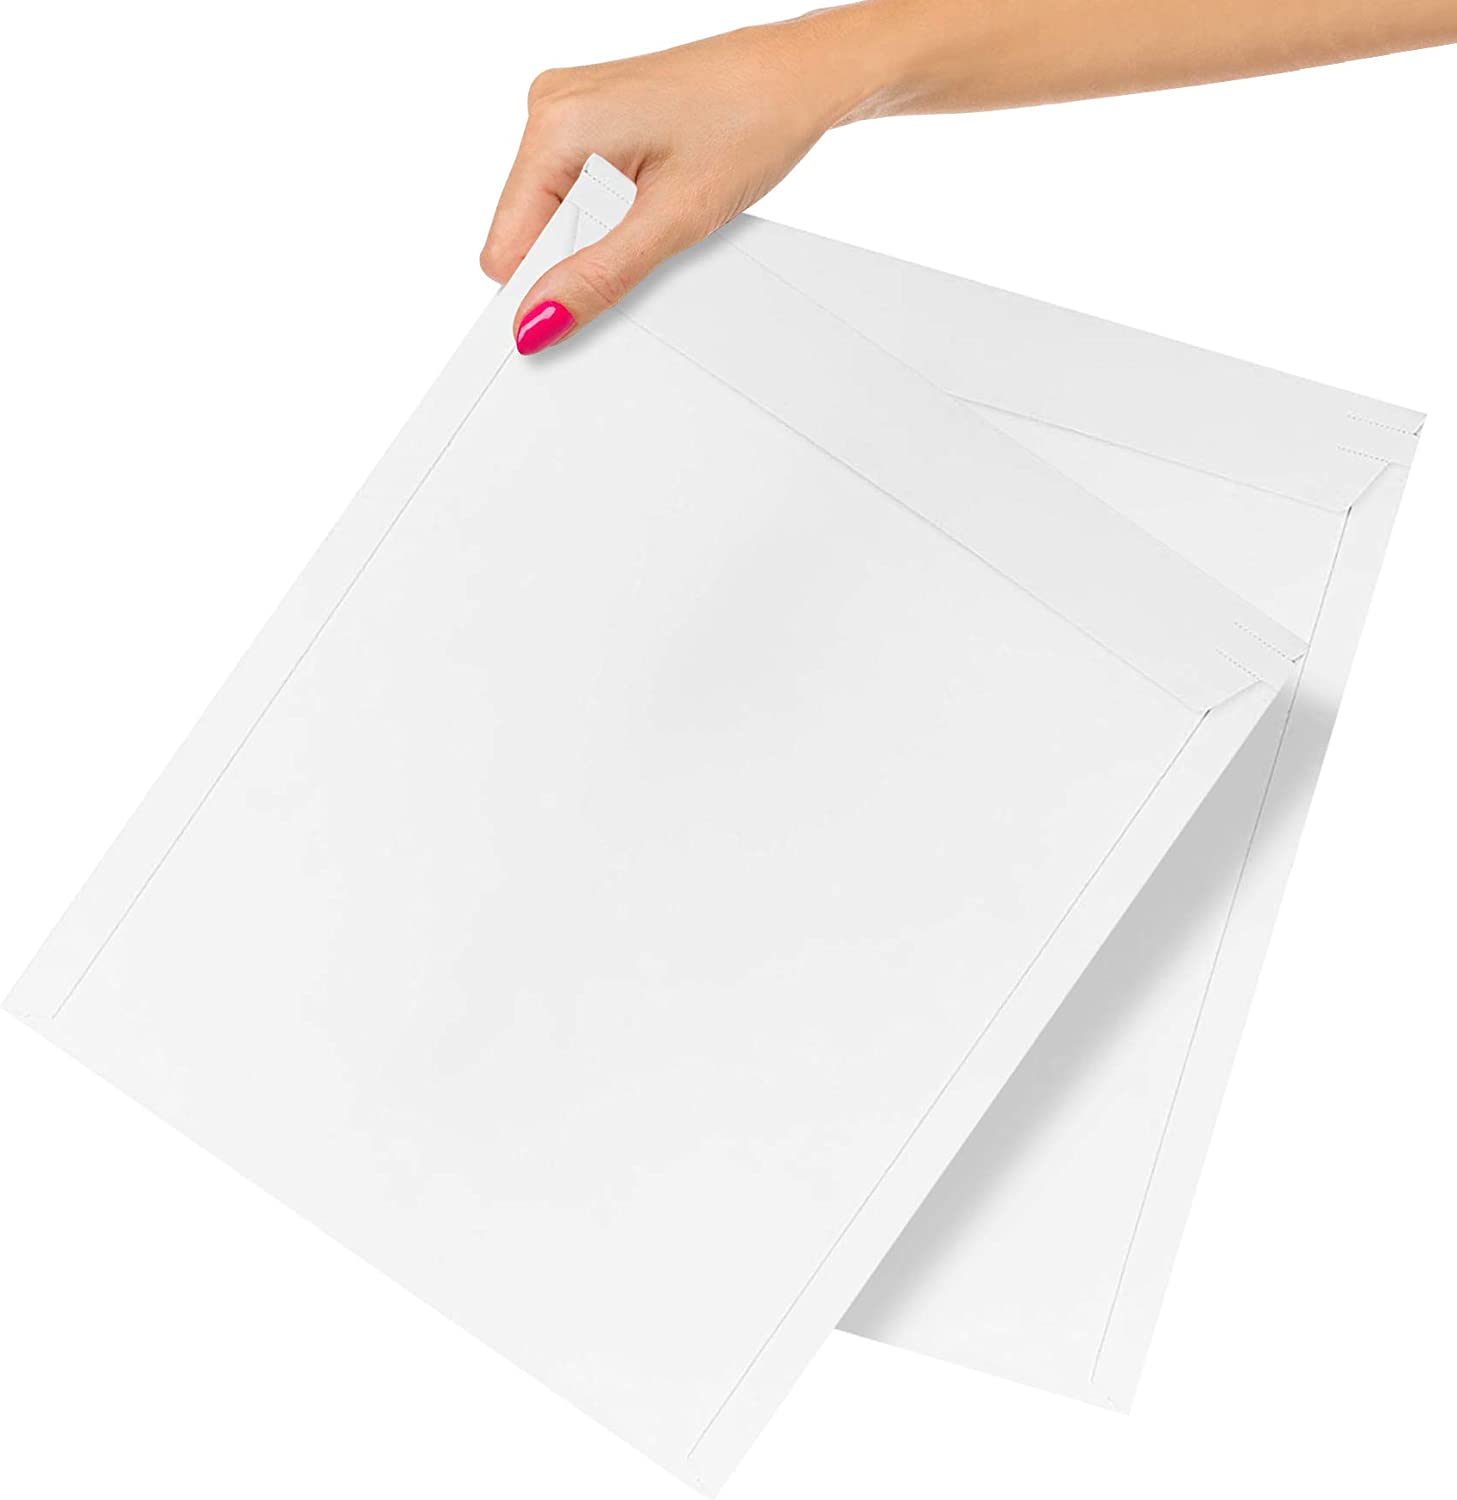 25 Pack Rigid Paperboard Mailers 12.75 x 15. Stay Flat Paperboard Envelopes 12 3/4 x 15. White Photography Mailer. Large Size. No Bend Documents, Photo, Prints. Peel and Seal.